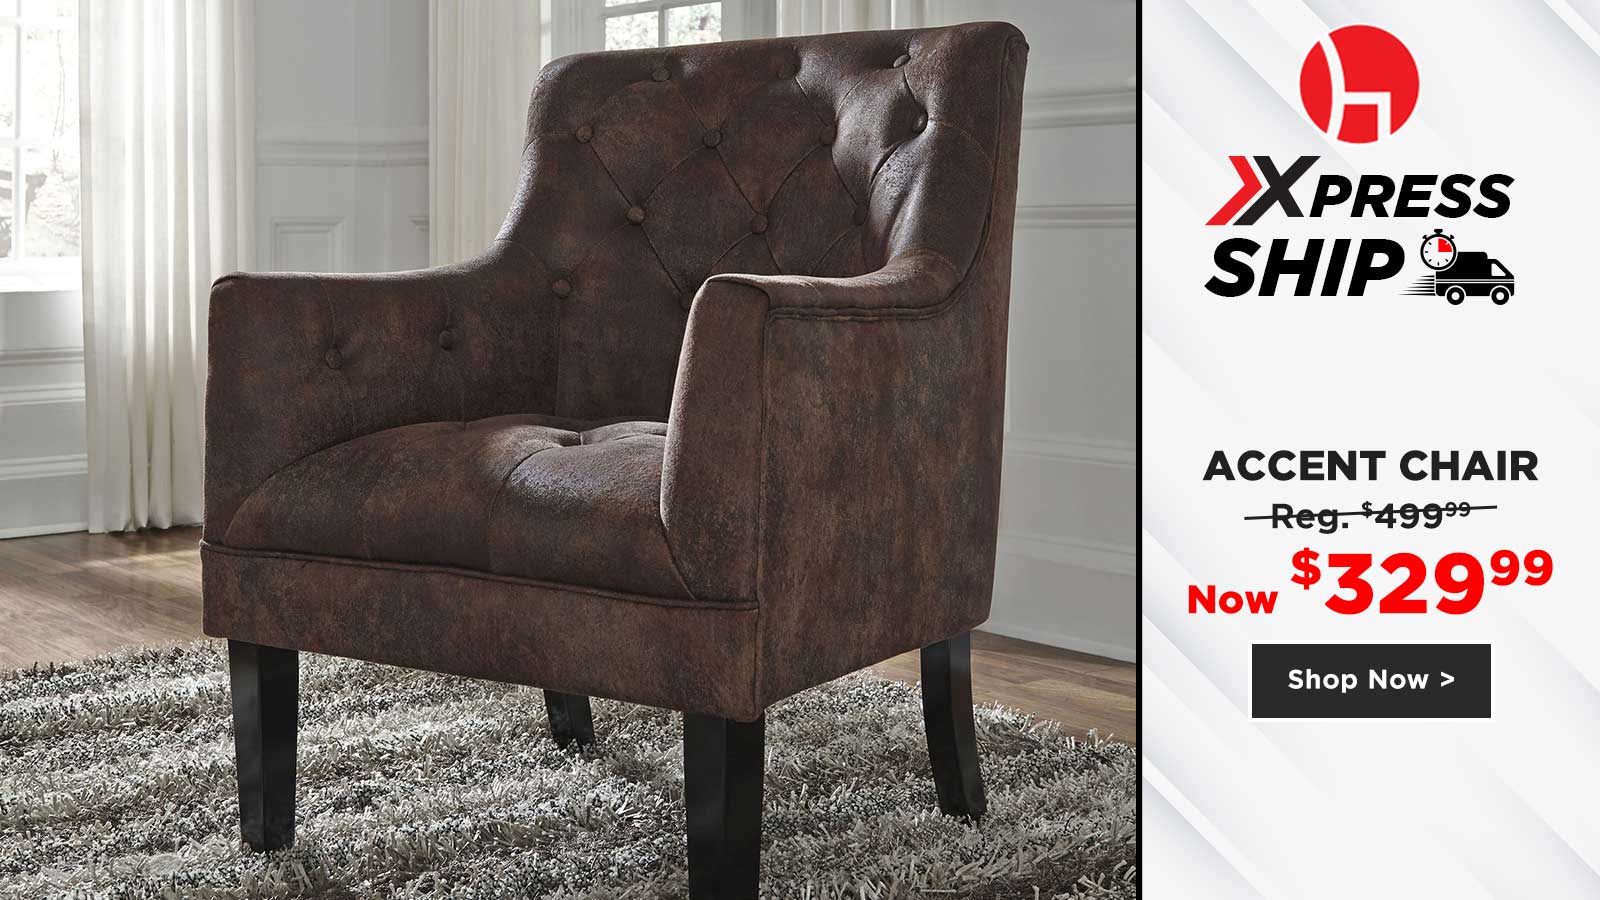 Accent Chair $329.99